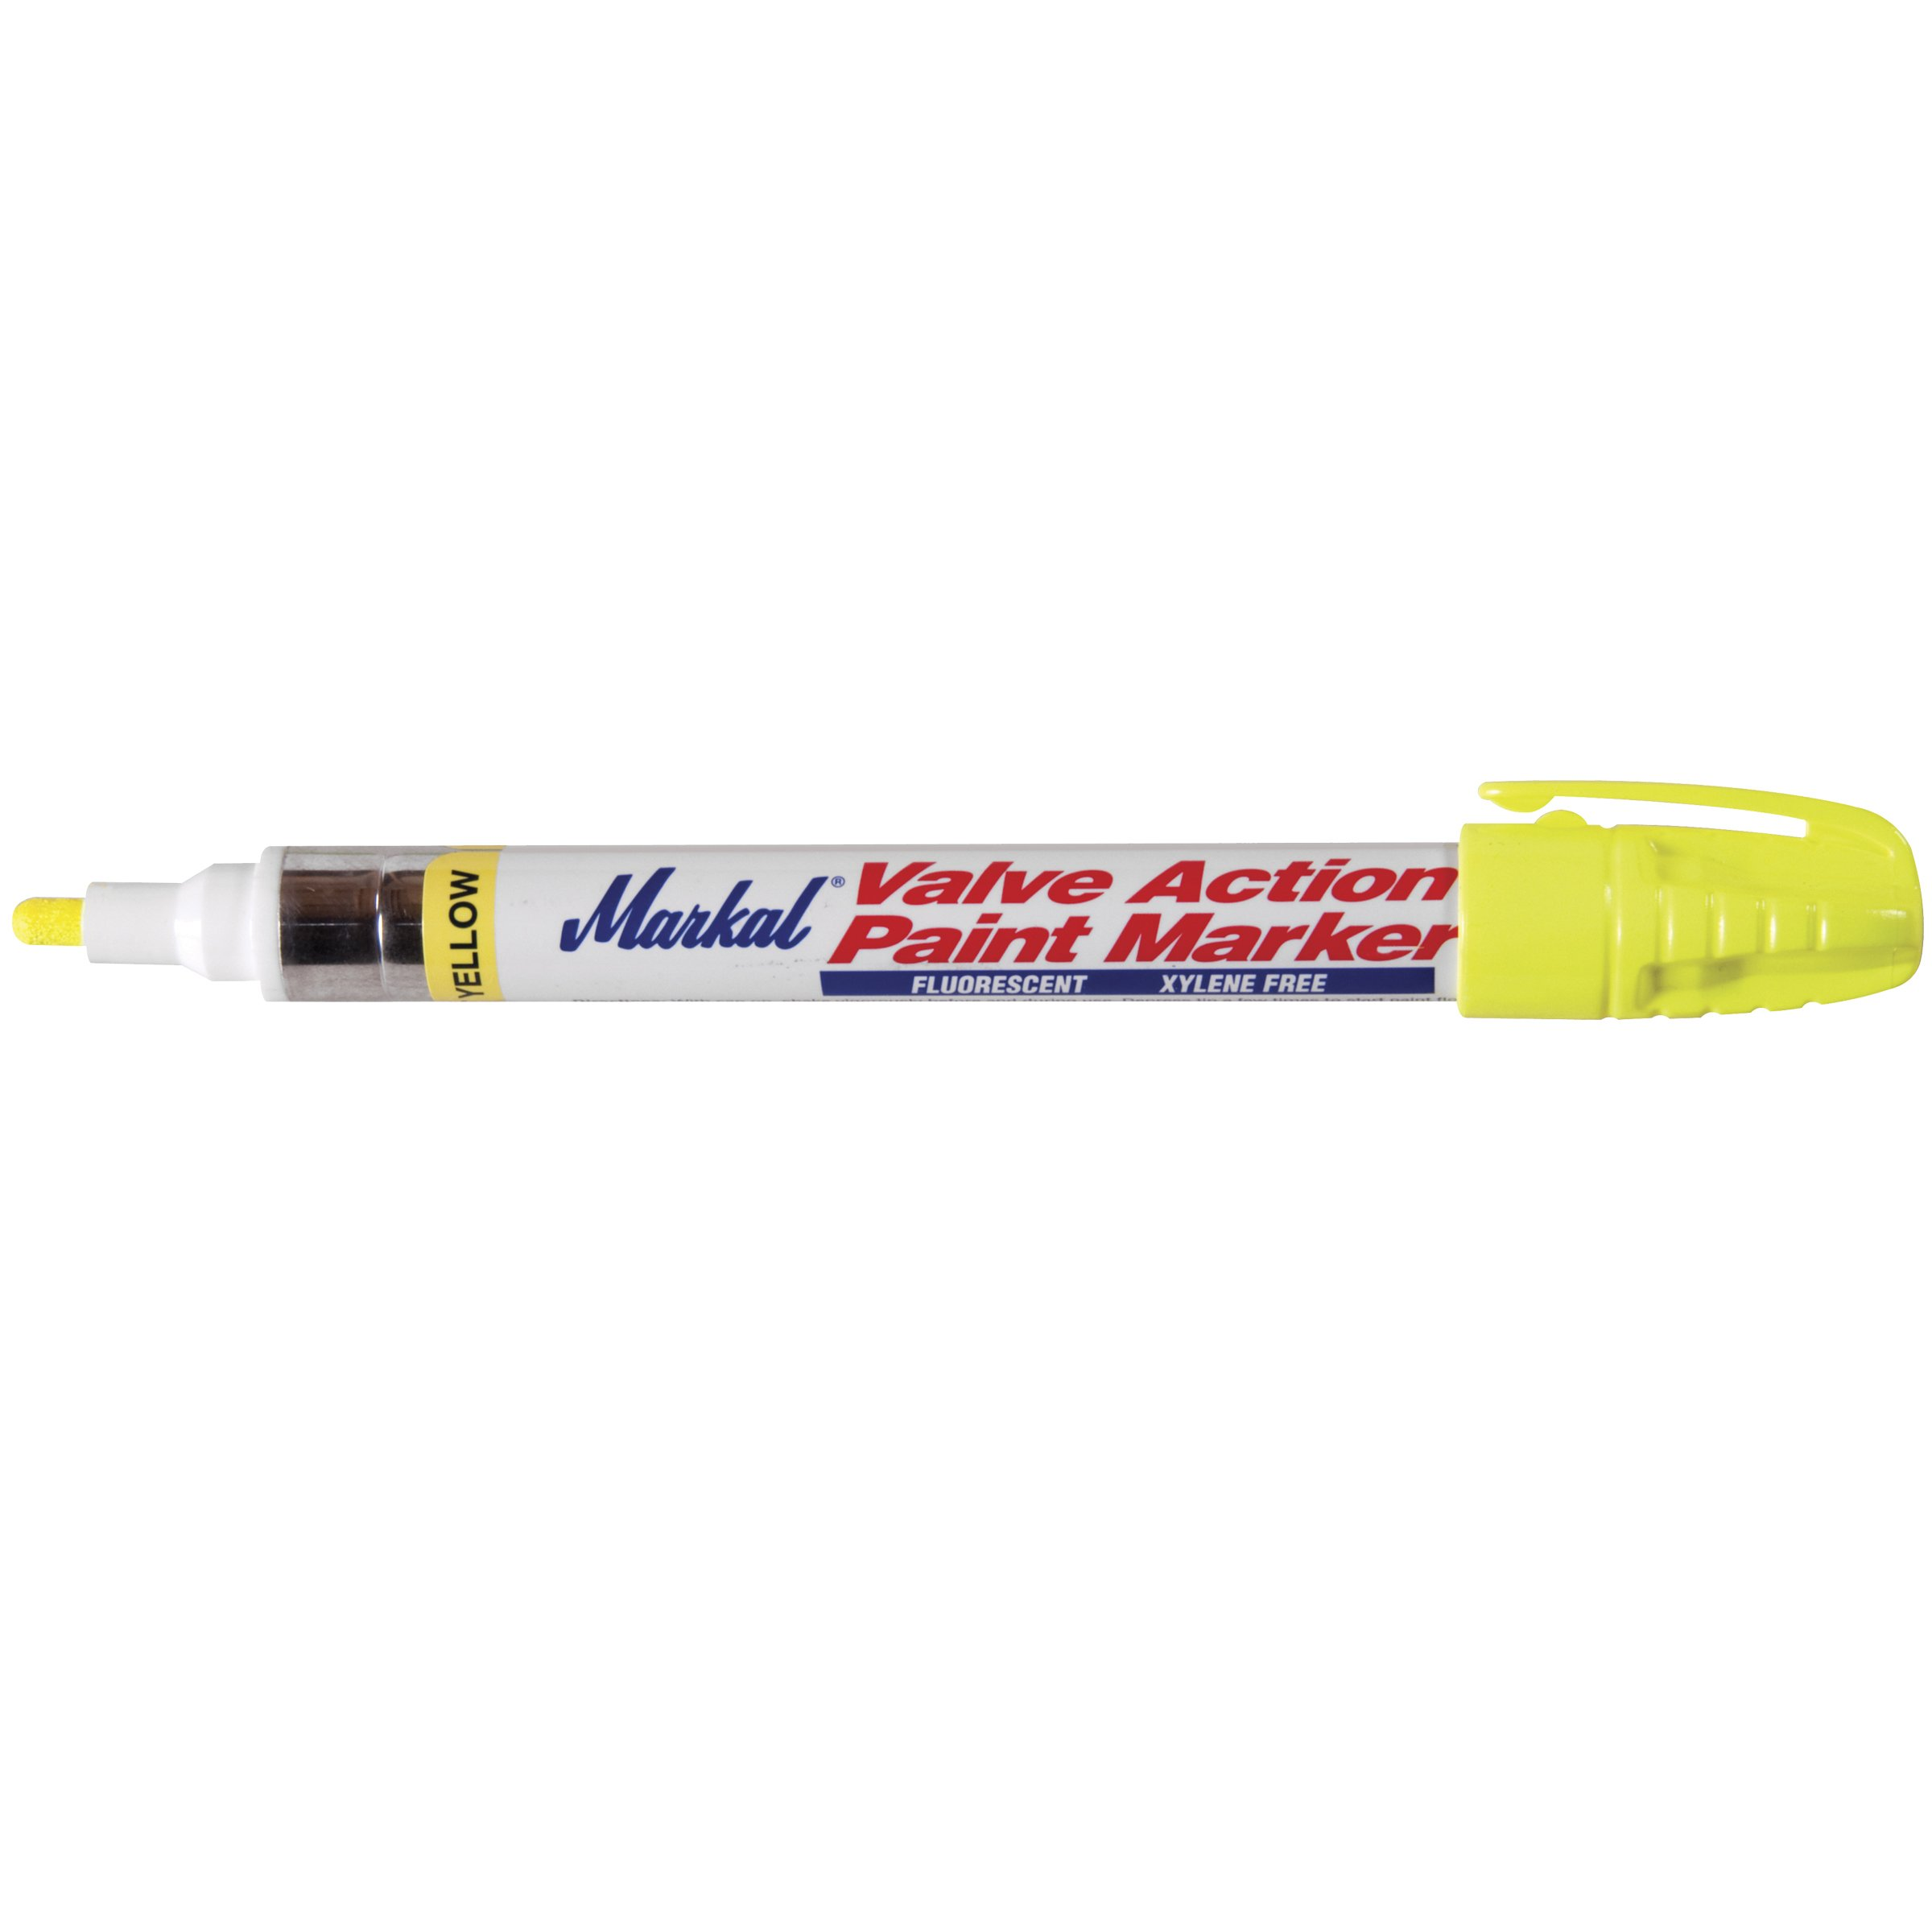 Markal 97050 Valve Action Paint Marker with 1/8'' Bullet Tip, Fluorescent Yellow (12 Markers) by Markal